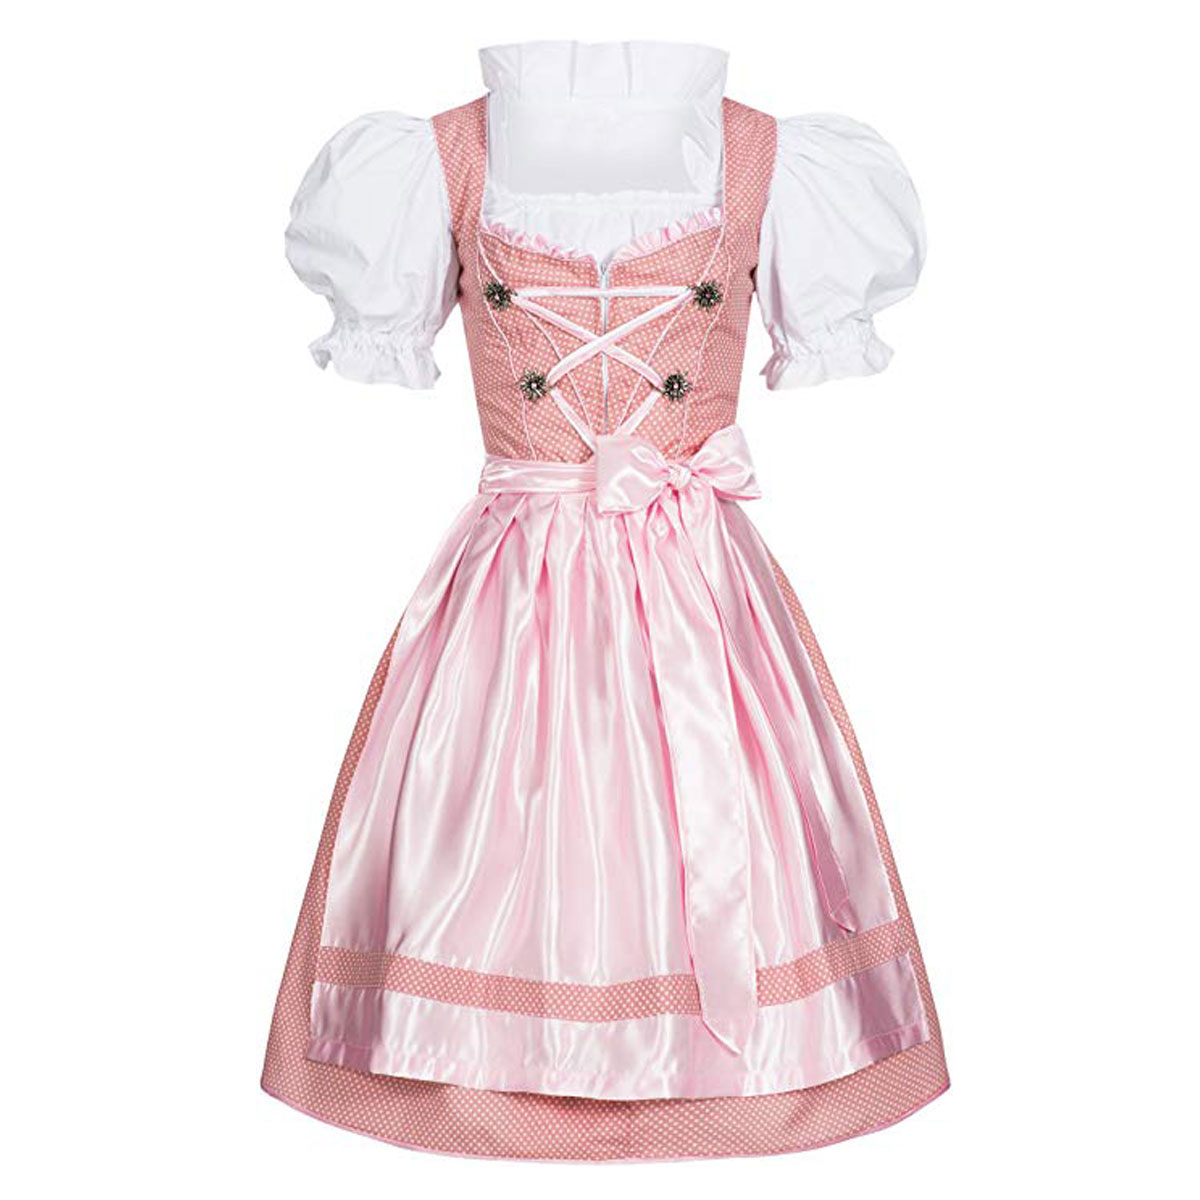 DOTS DIRNDL WITH COLLAR